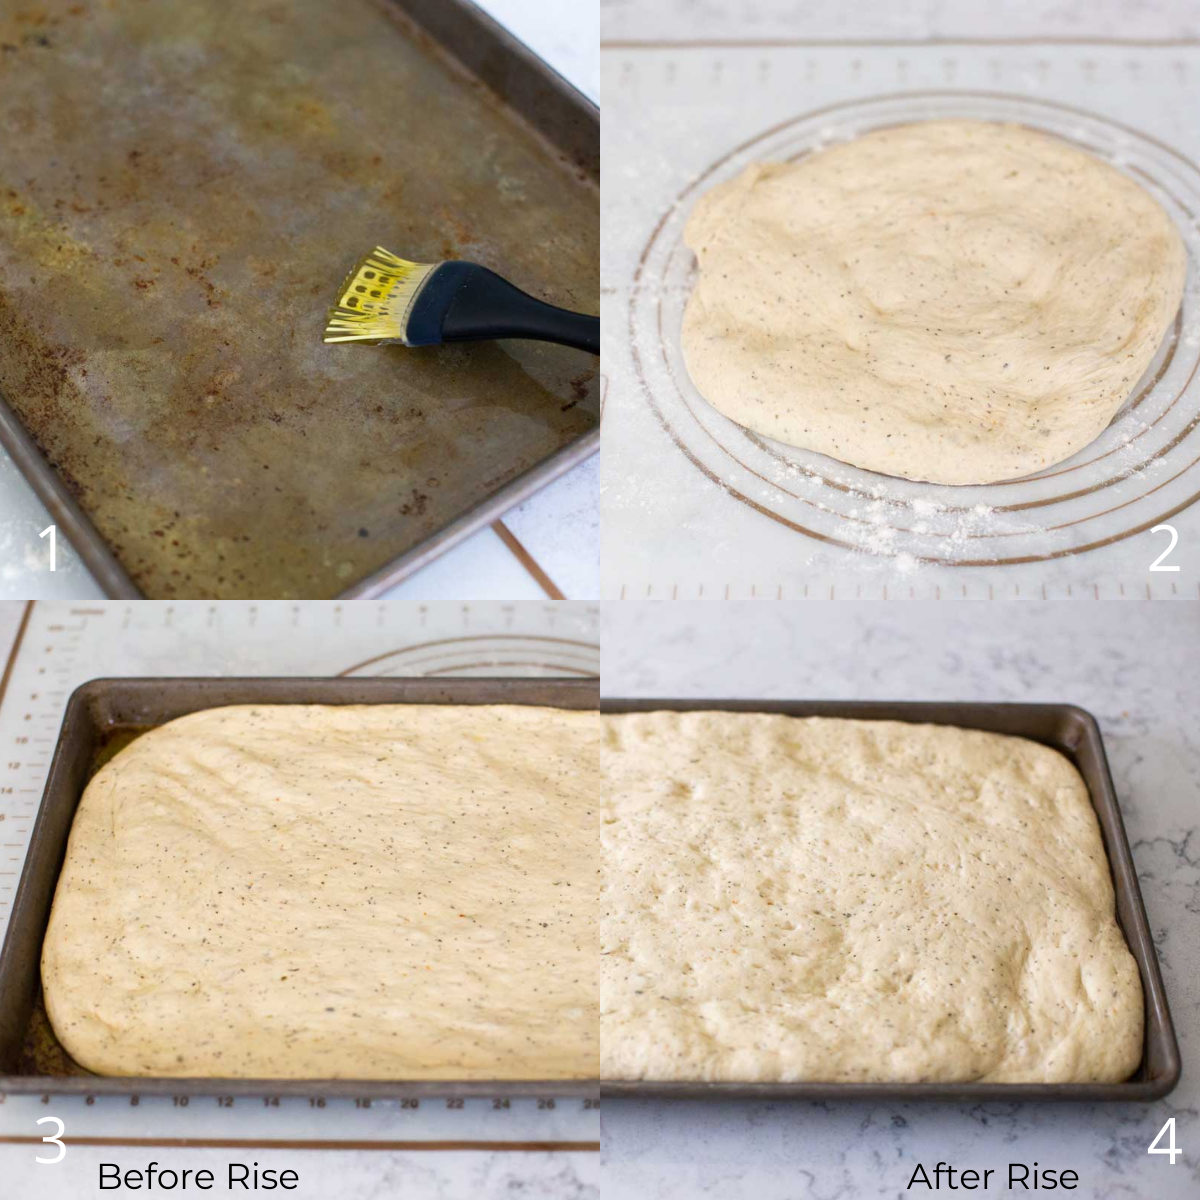 The step by step photos show how to pat out the focaccia dough and place it in the baking pan for the rise.